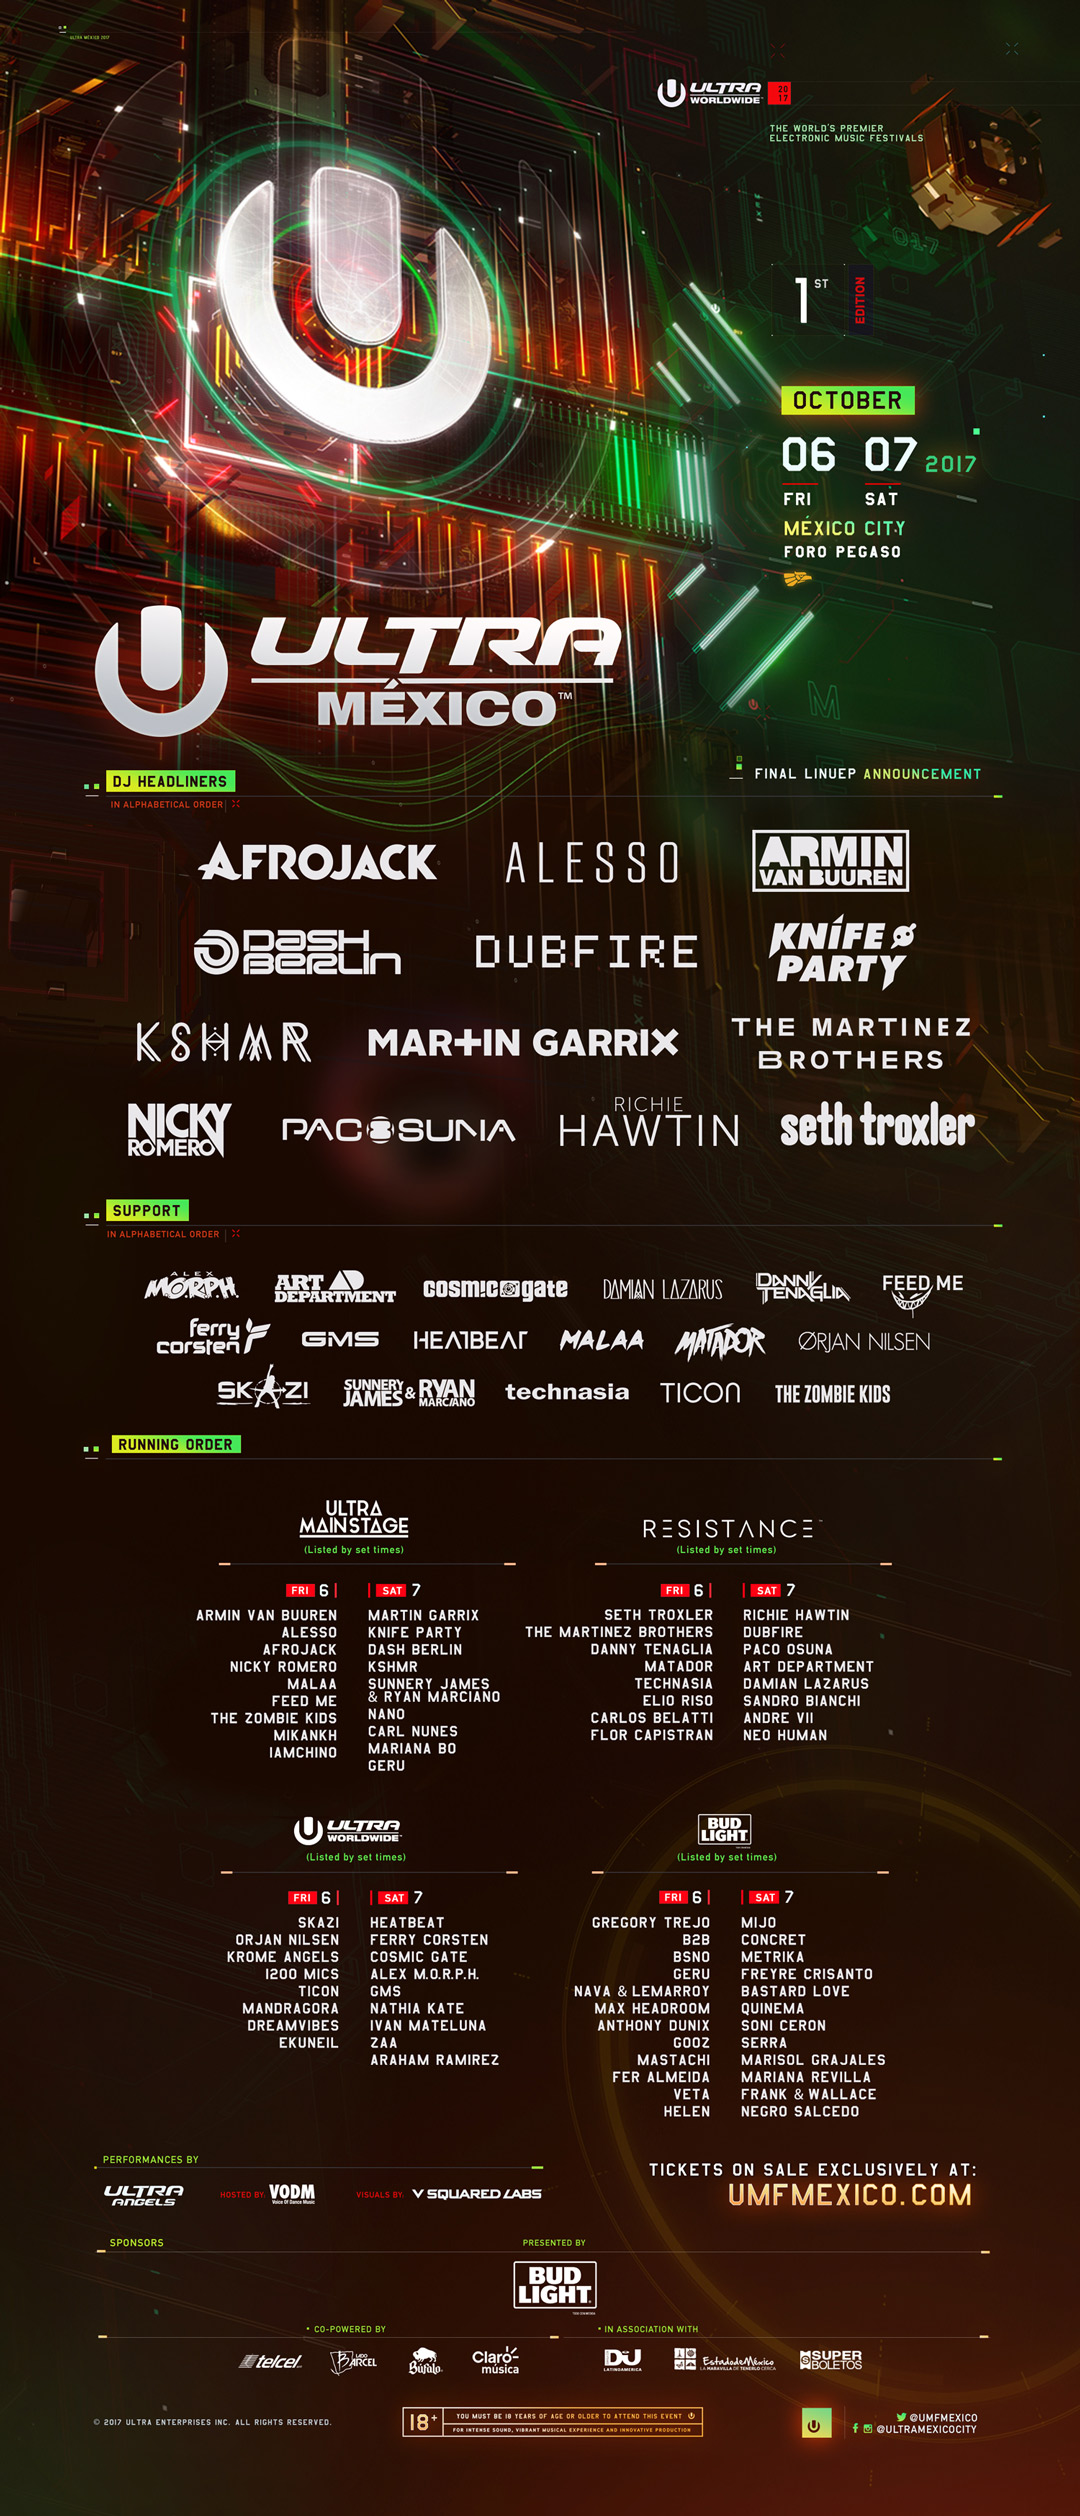 Ultra Mexico Offering Discounted Tickets, Giving Back To